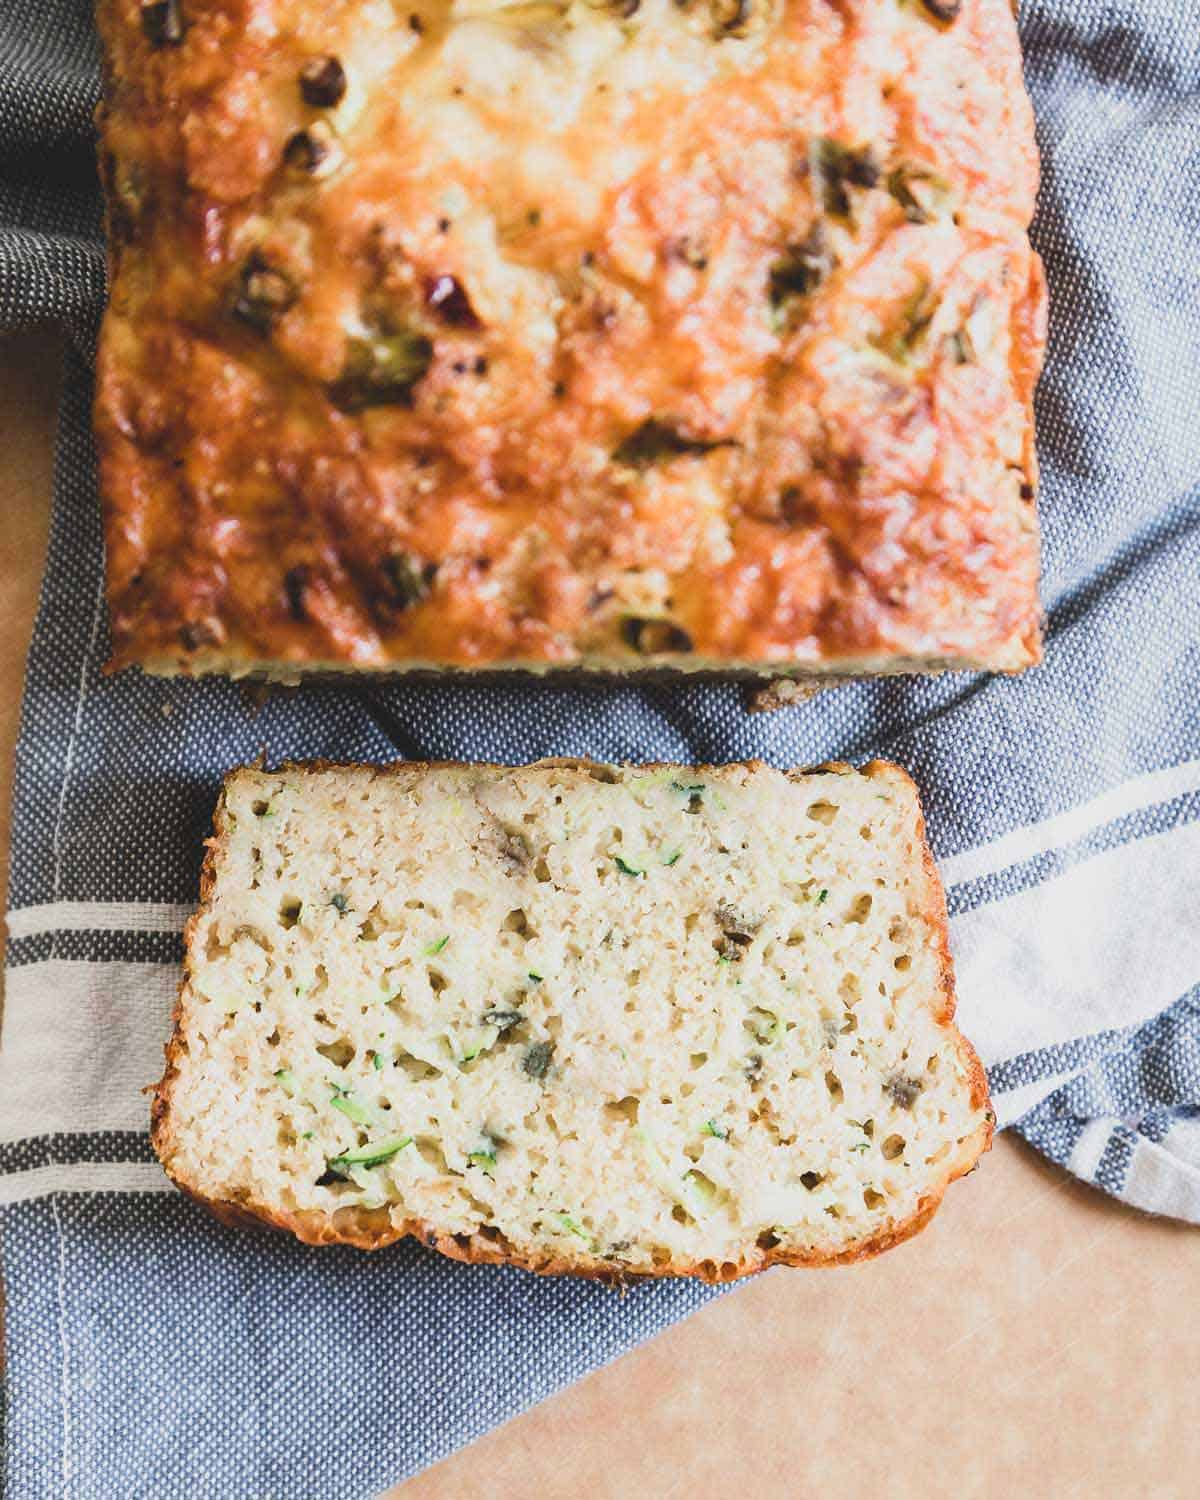 A savory zucchini cheese bread recipe perfect for using up fresh summer squash.